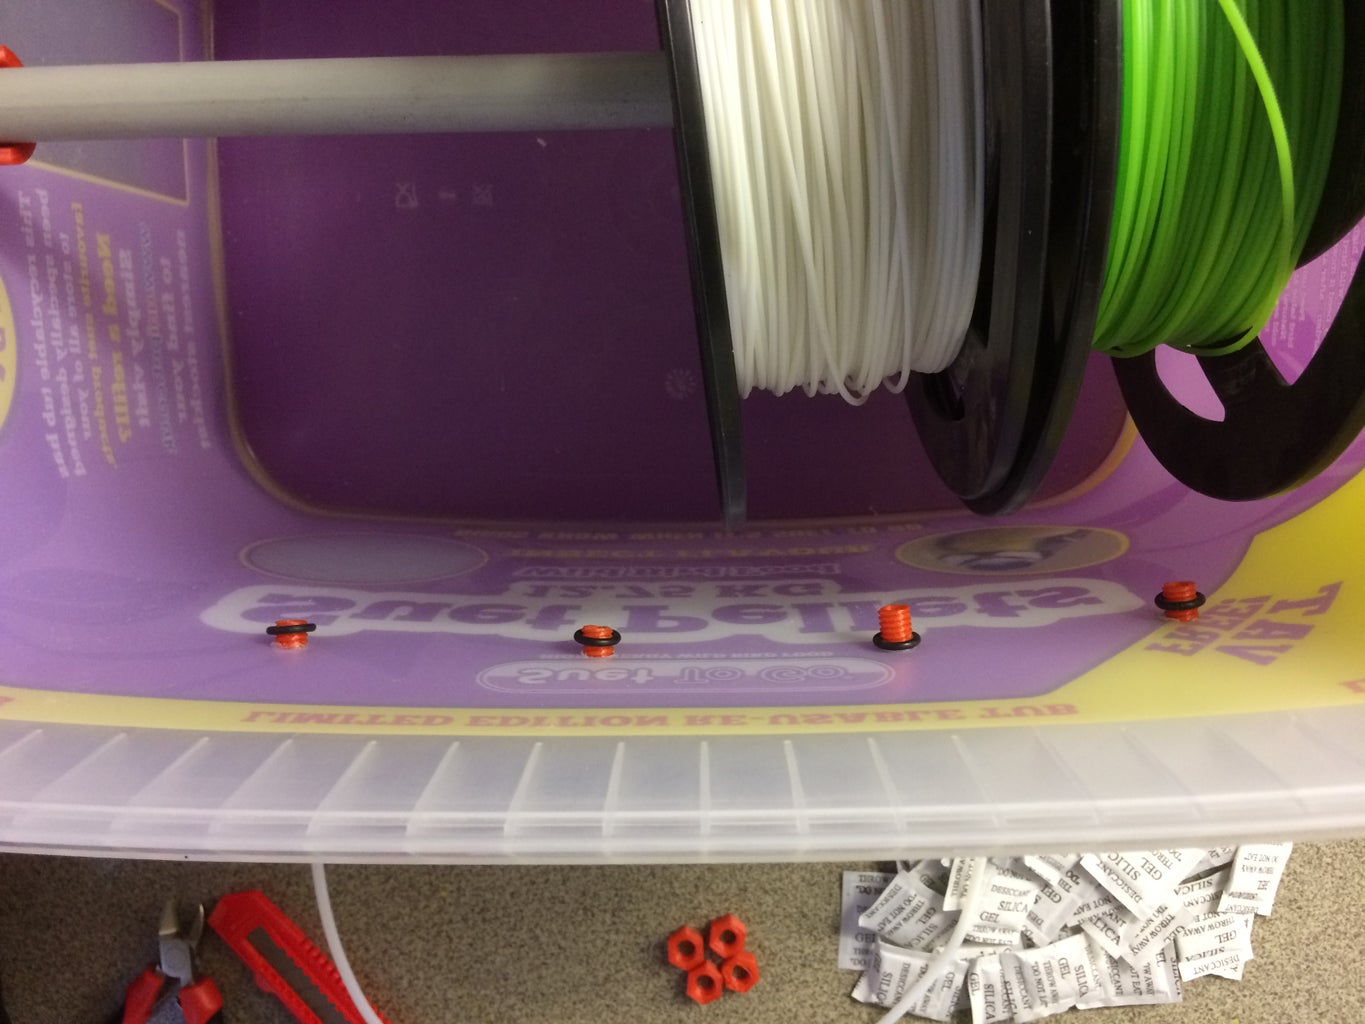 Step 6: Attach the 3d Printed Bolts & Nuts